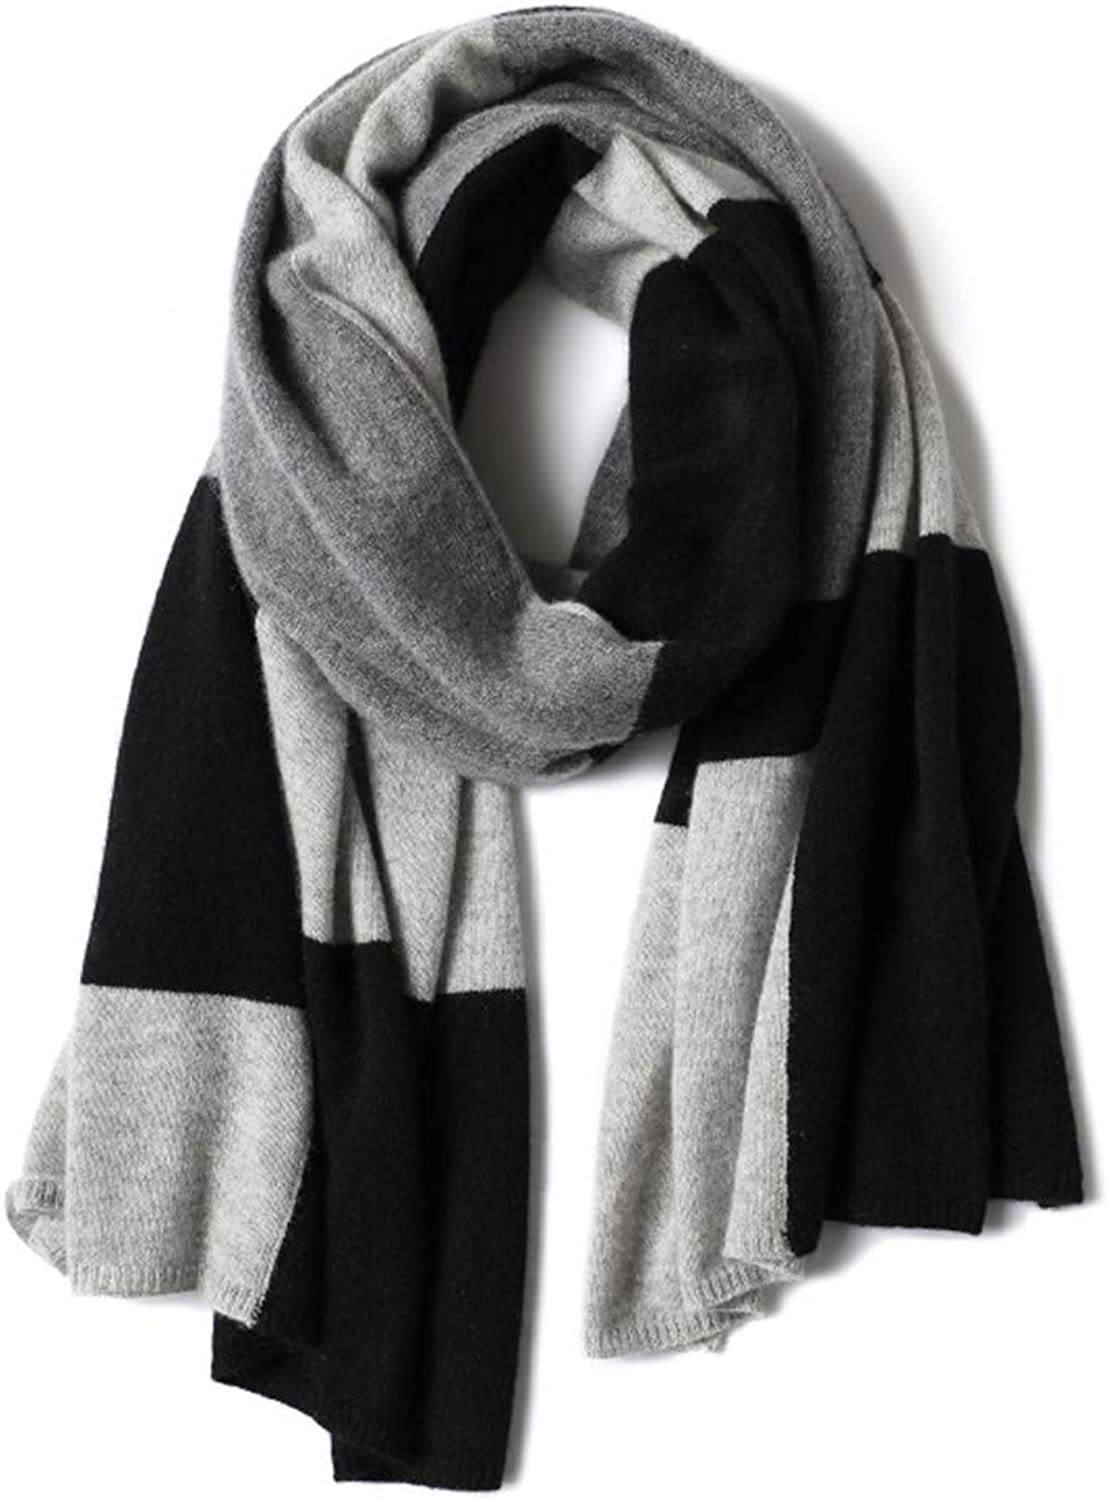 Cold Weather Scarves Scarf Ladies Scarf Ladies Shawl Knit Cashmere Scarf colorblock Plaid Literary Scarf Warm Wild Scarf New Year Gift Birthday Gift Wraps